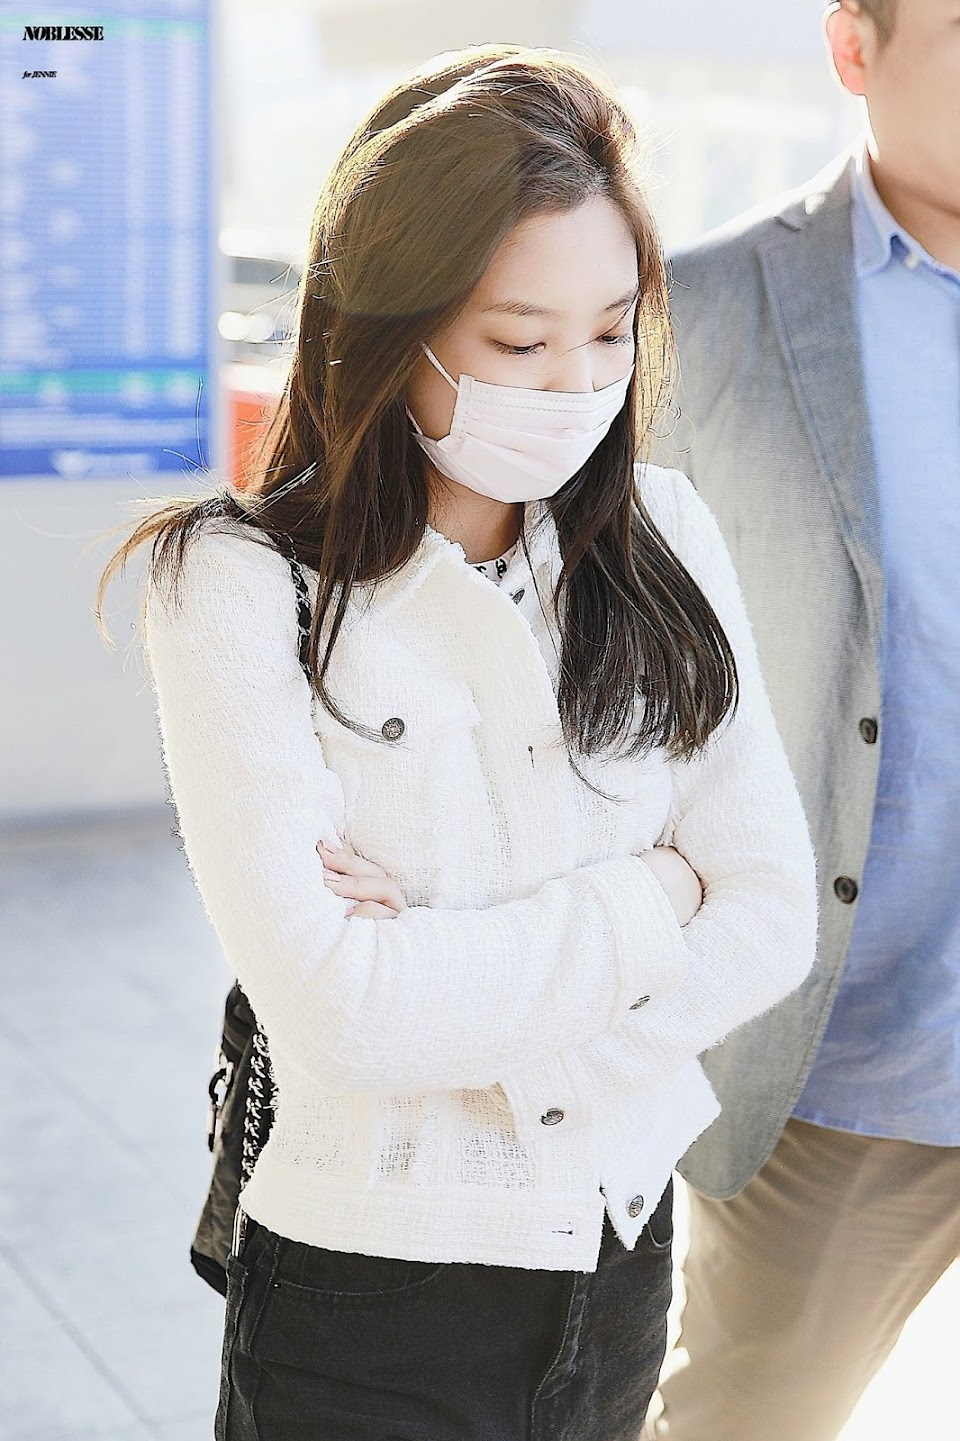 jennie incheon